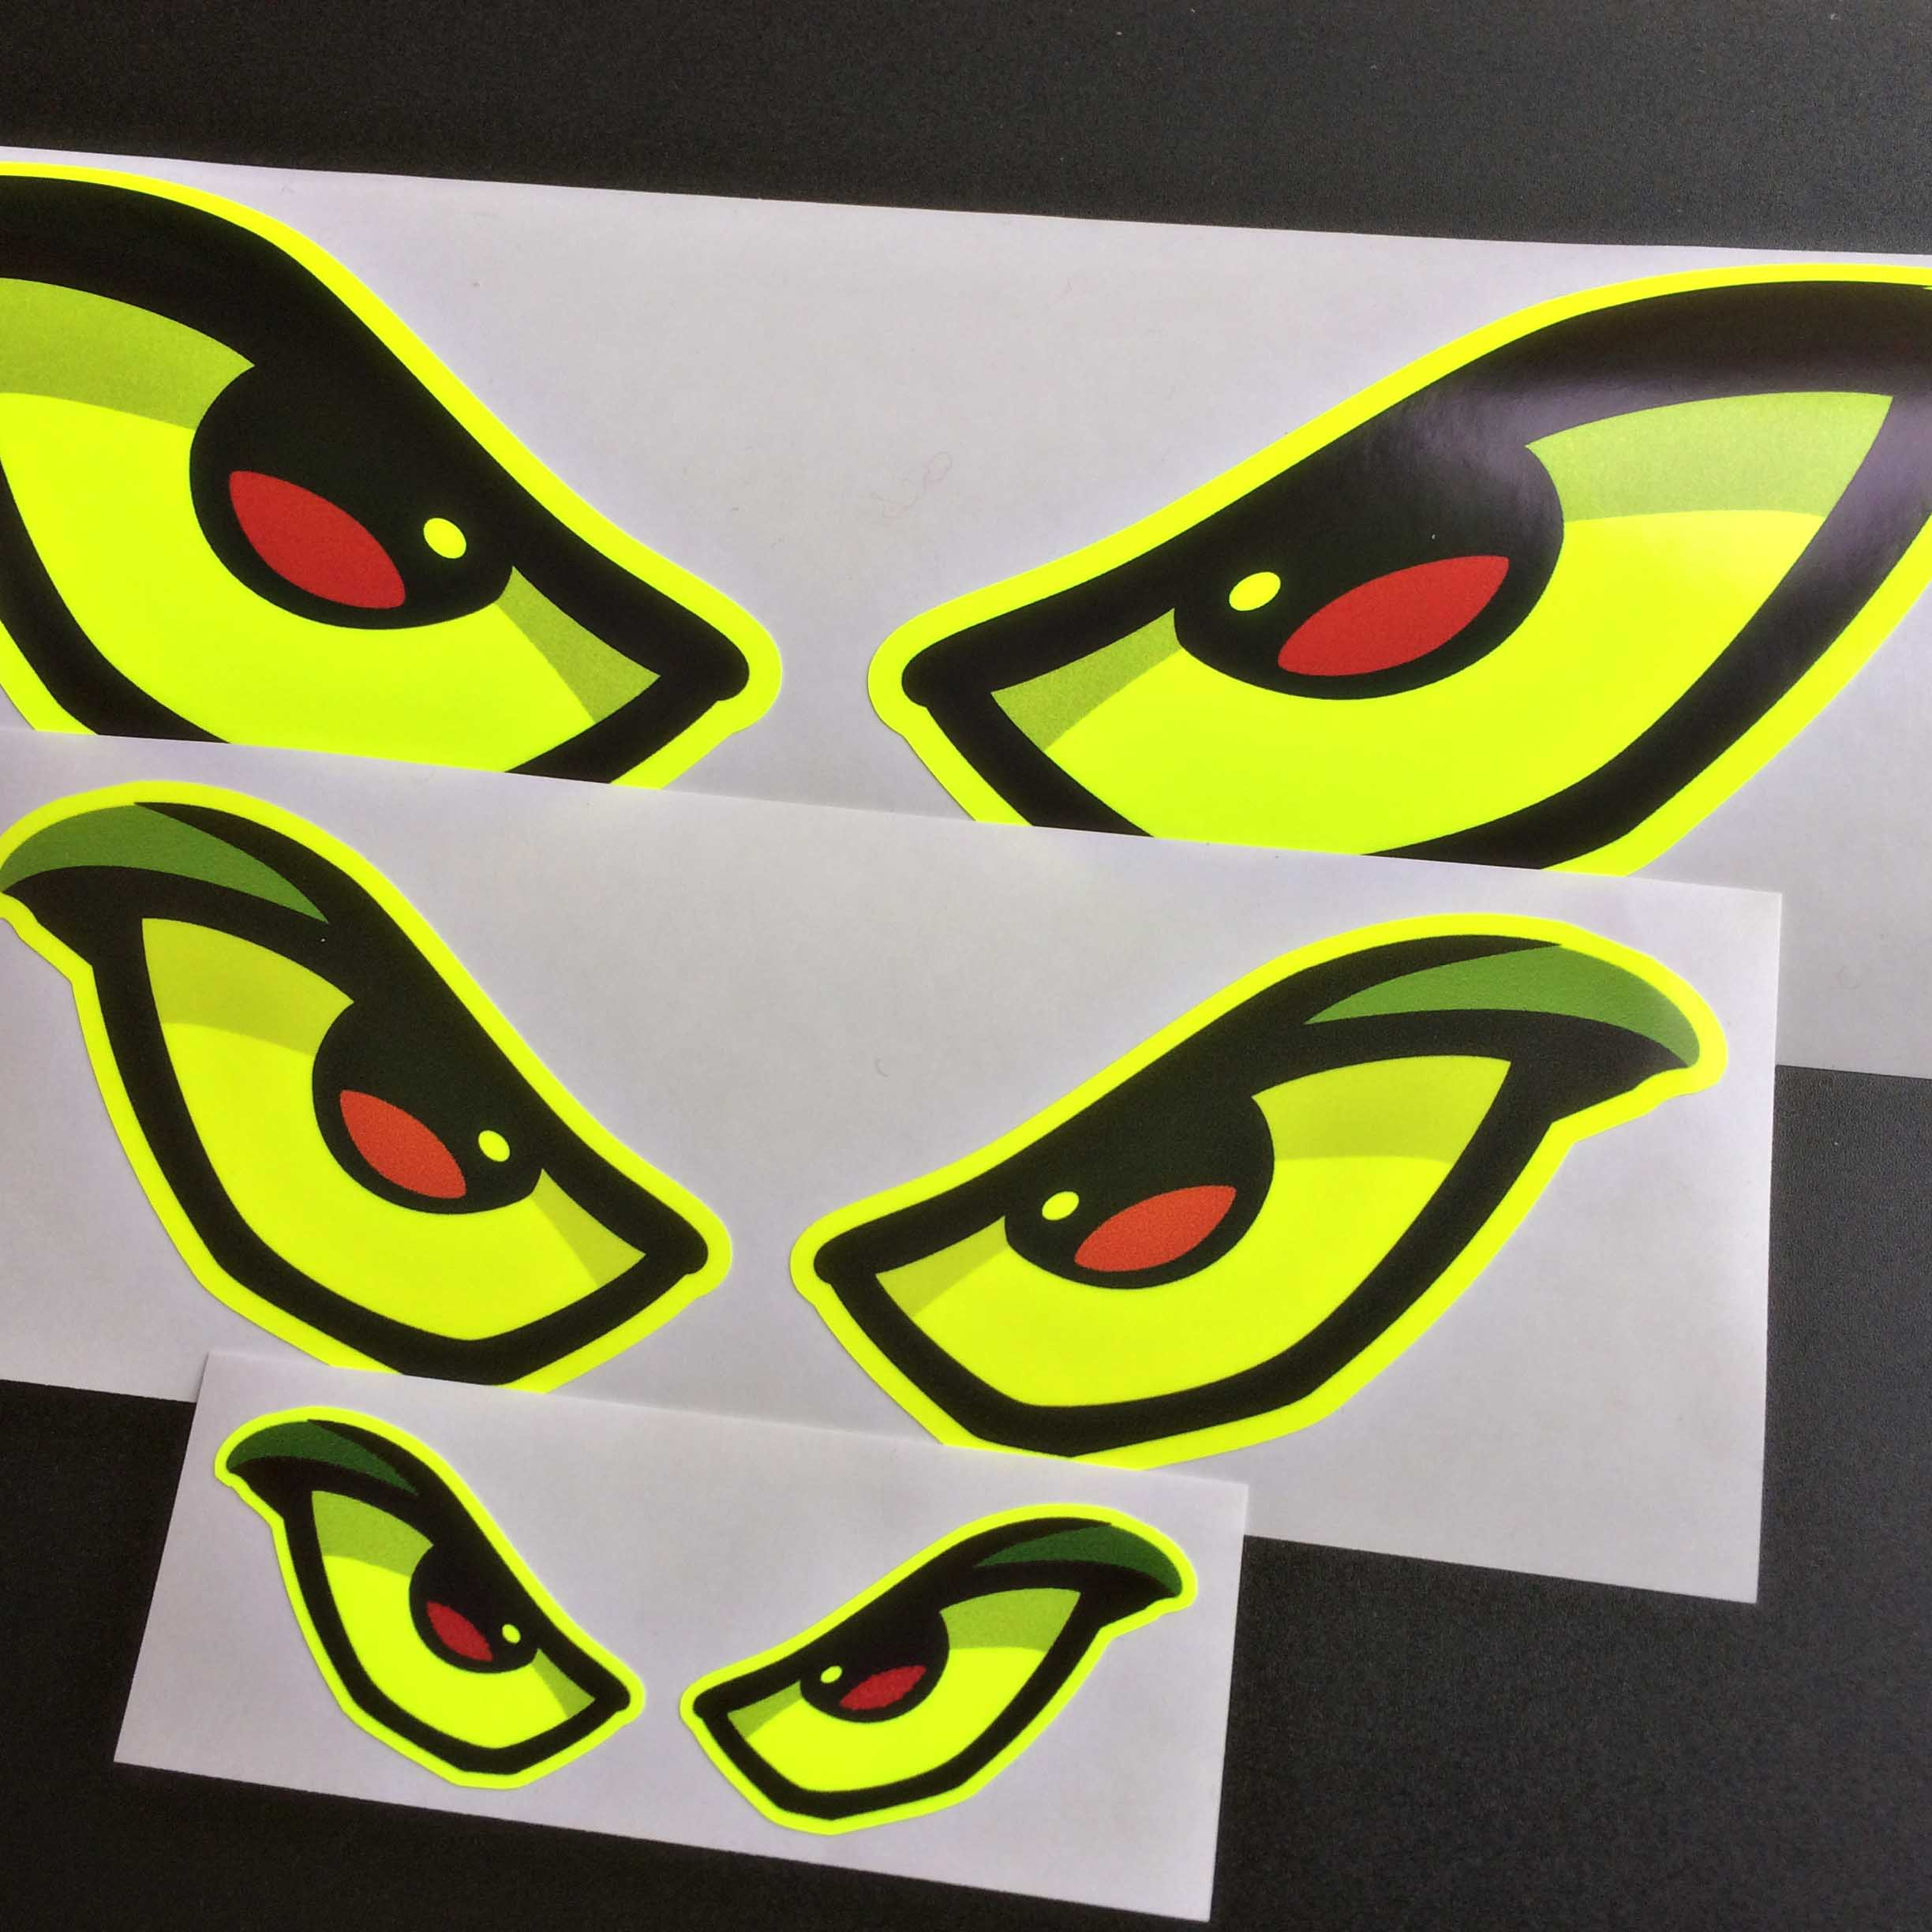 Pair of reflective, fluorescent yellow evil eyes. Pupils are black and red. Eyes are lined in thick black liner.